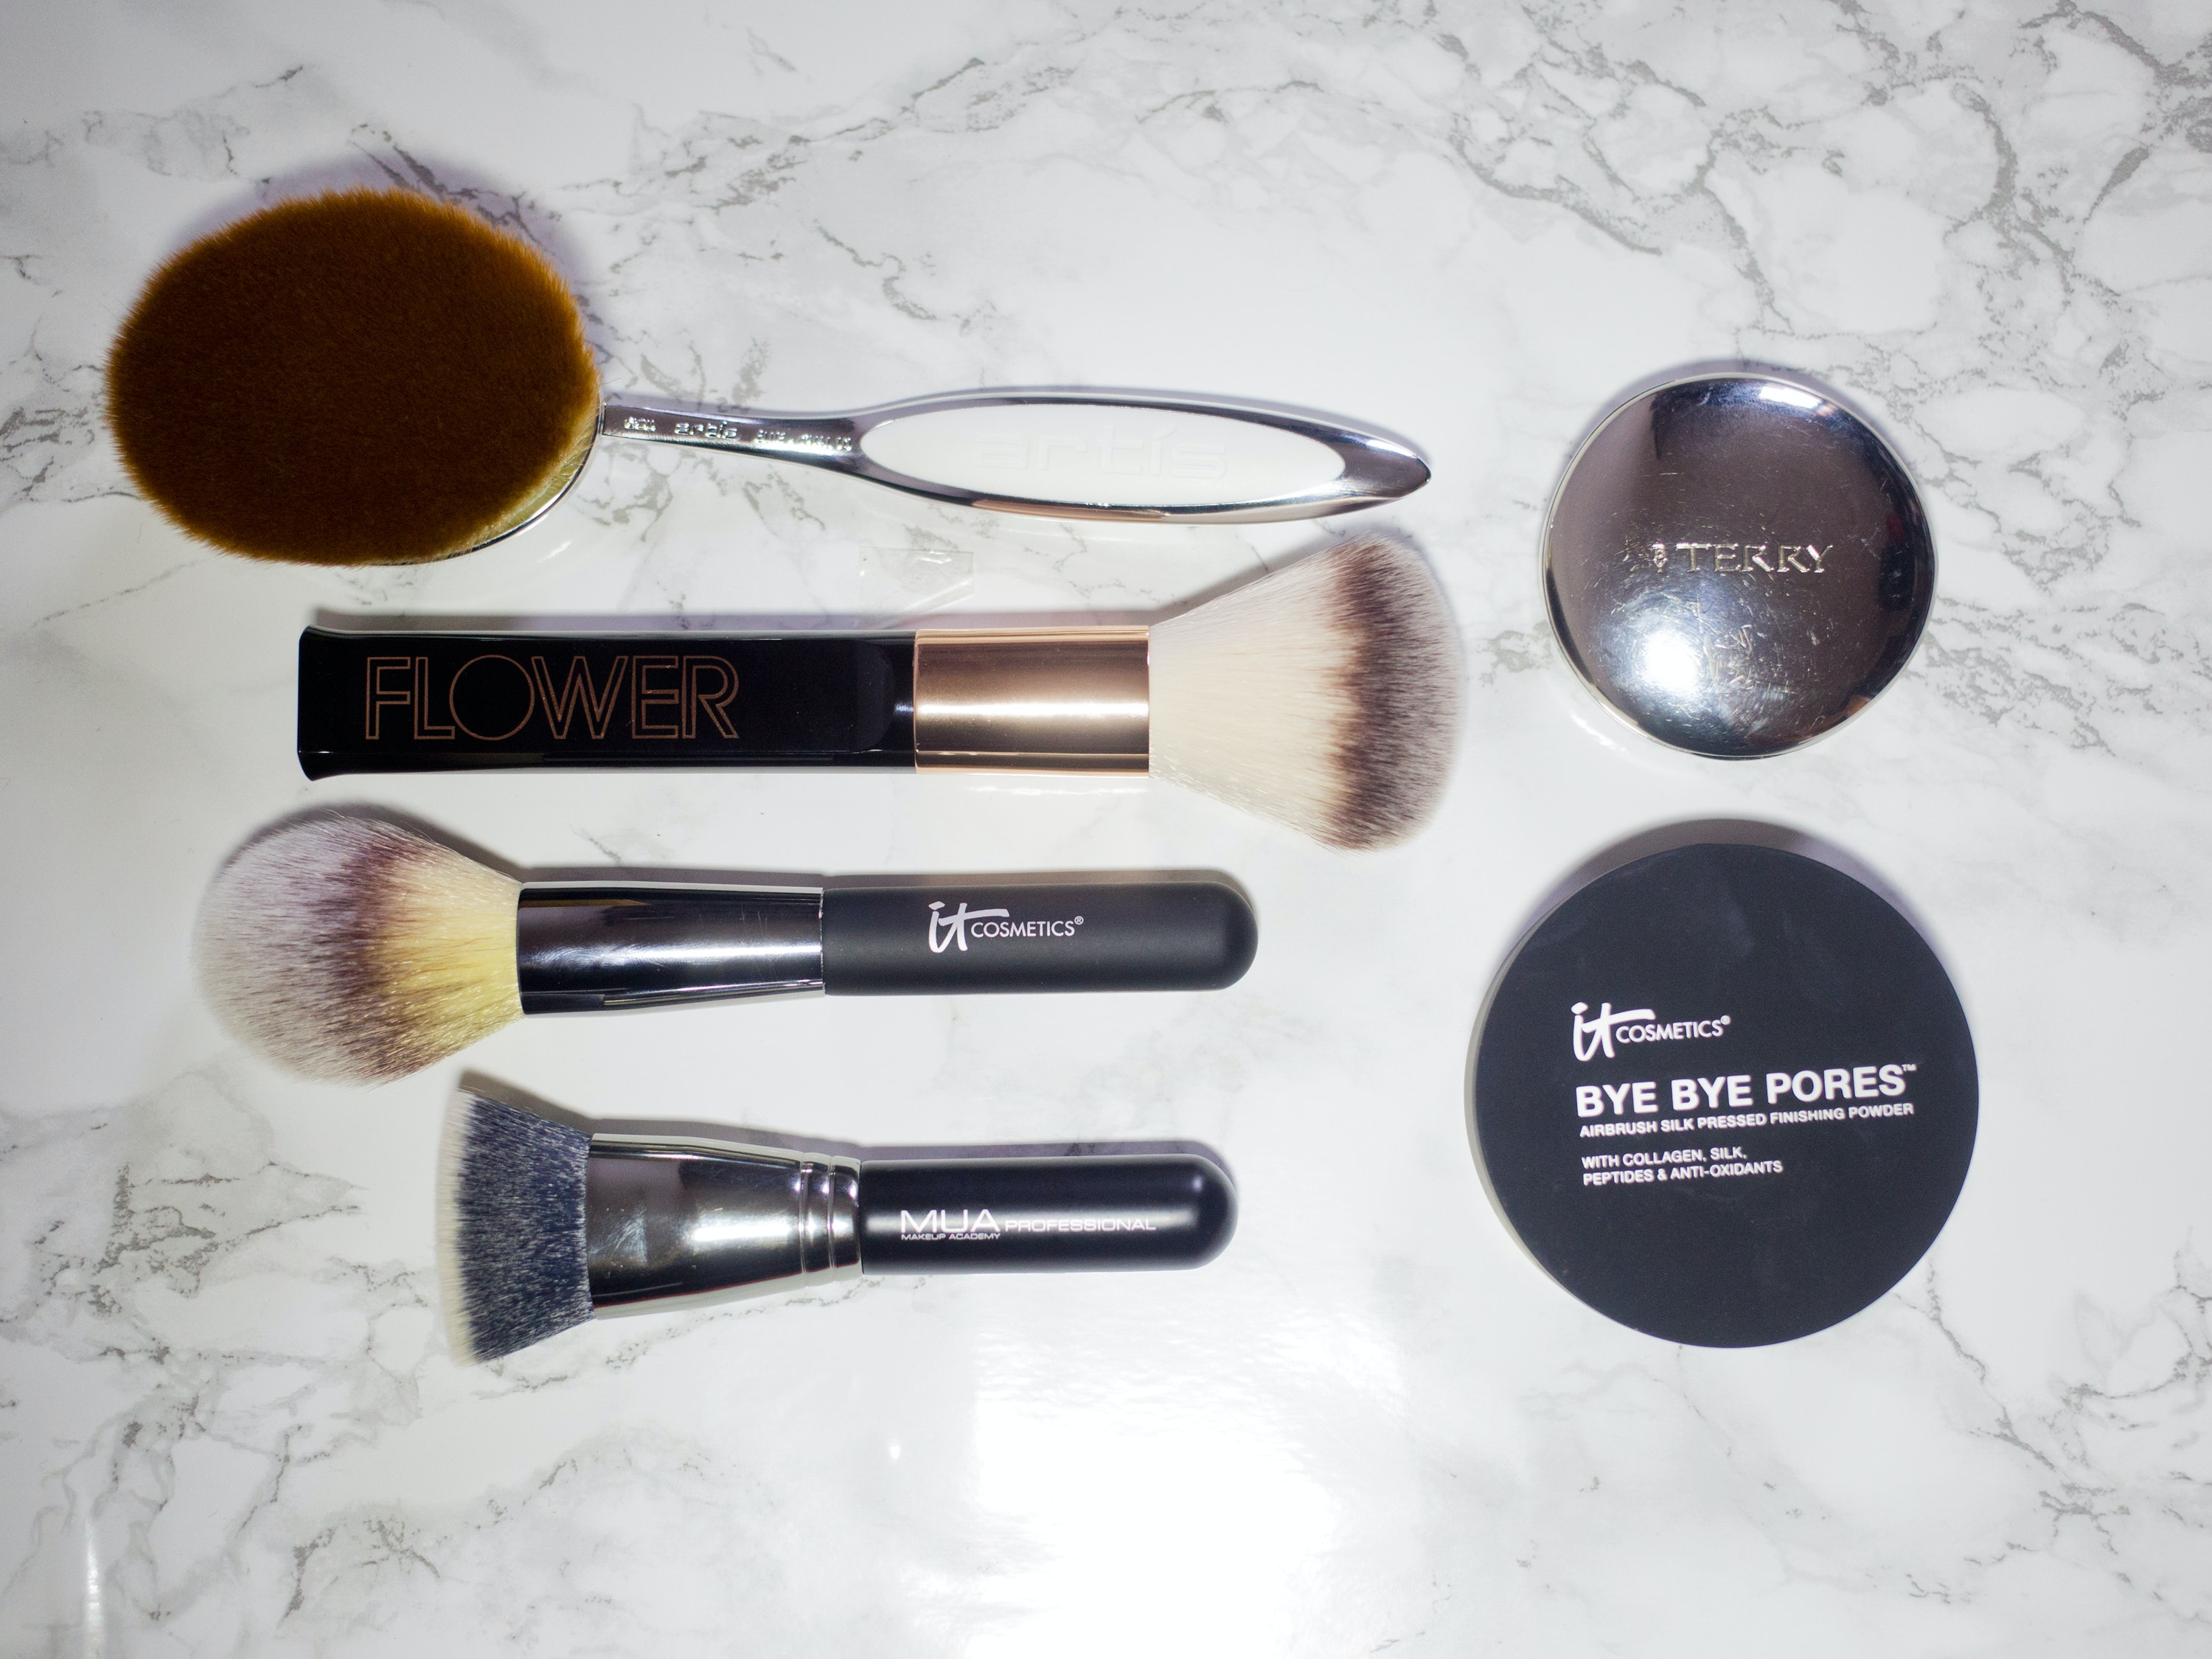 e17105827c17 How To Choose Your Foundation Brush Based On The Finish You're ...